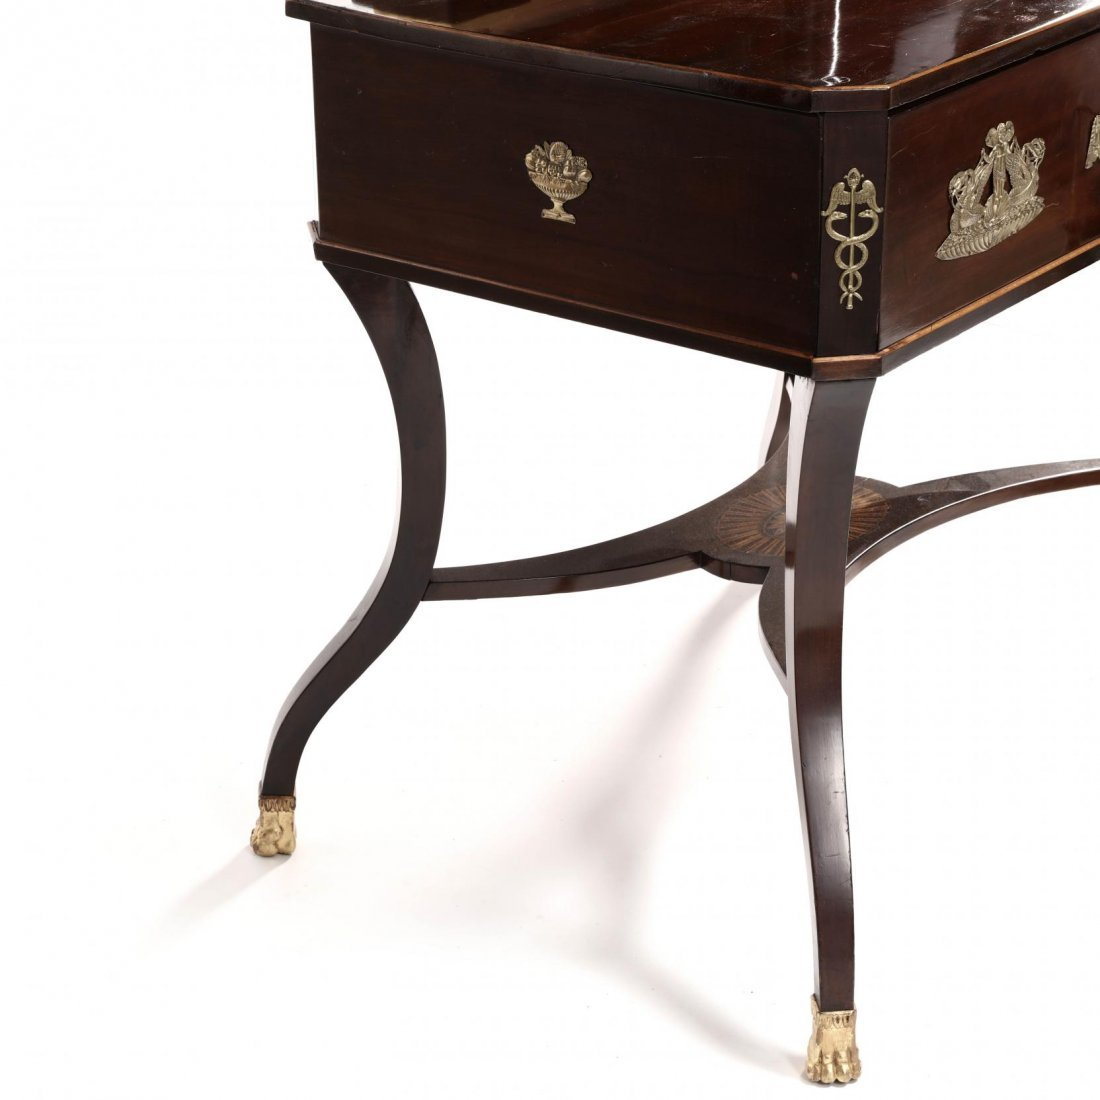 French Classical Revival Dressing Table - 6